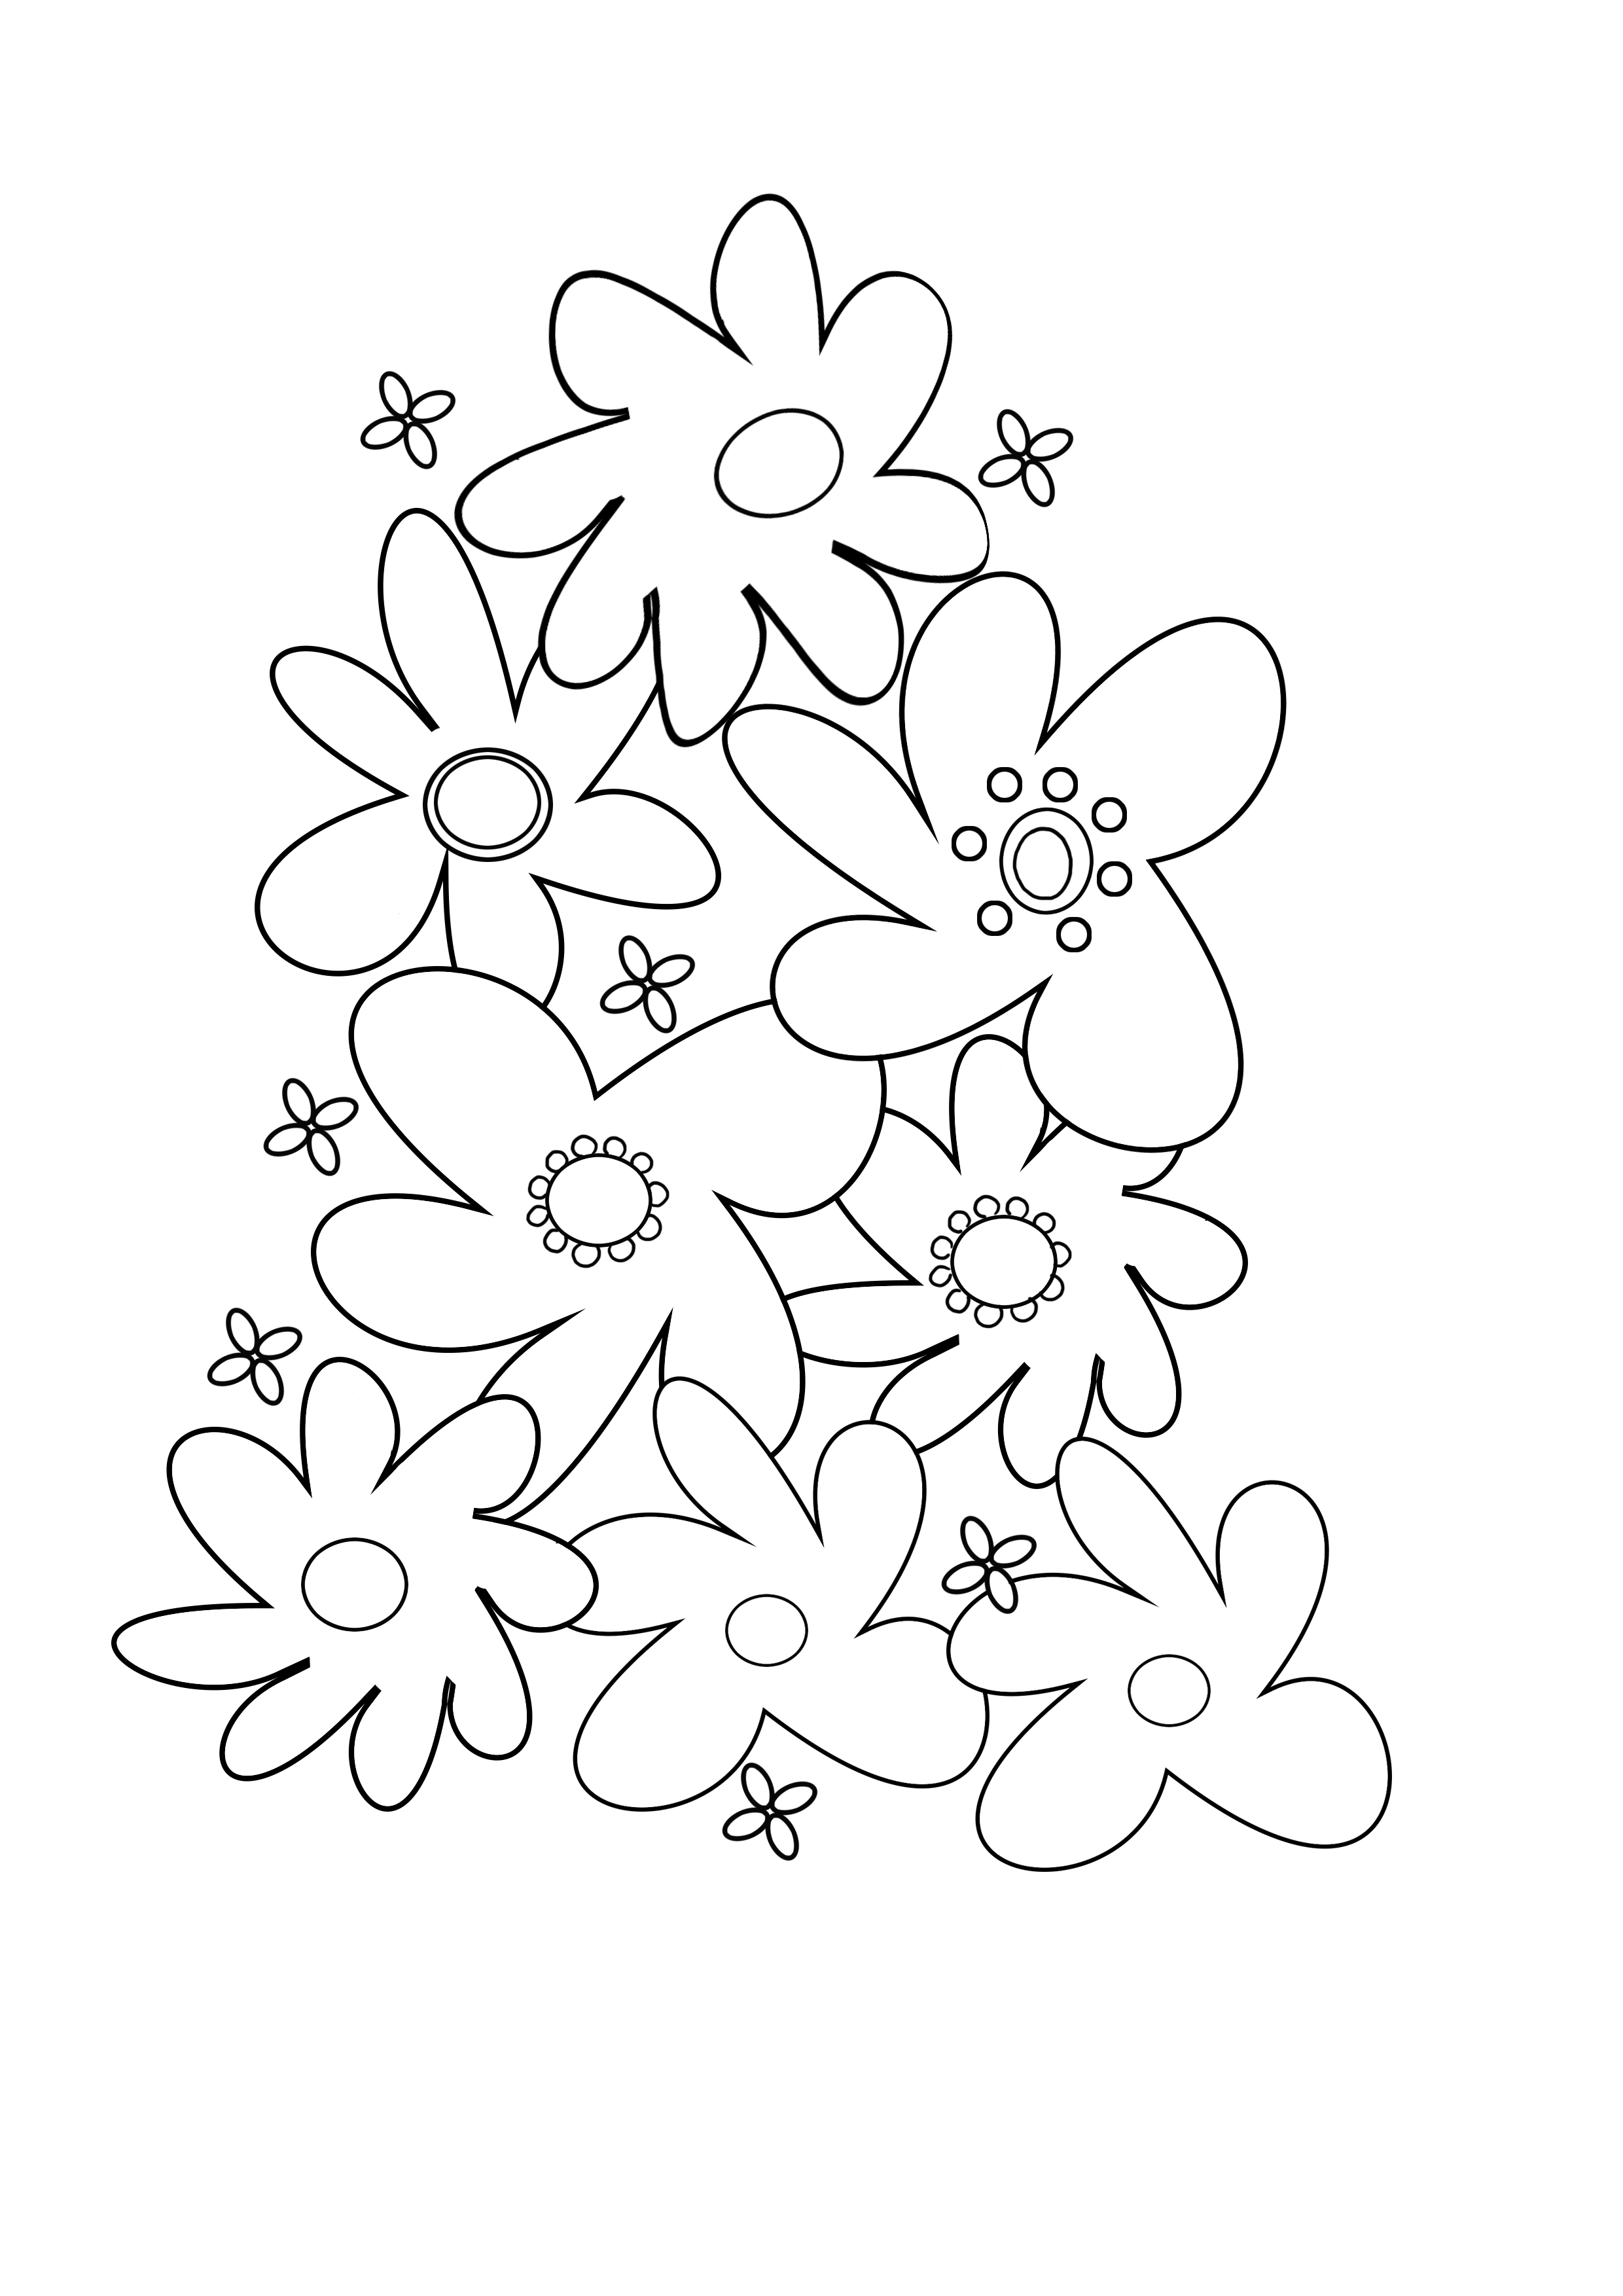 coloring flower free printable flower coloring pages for kids best flower coloring 1 1